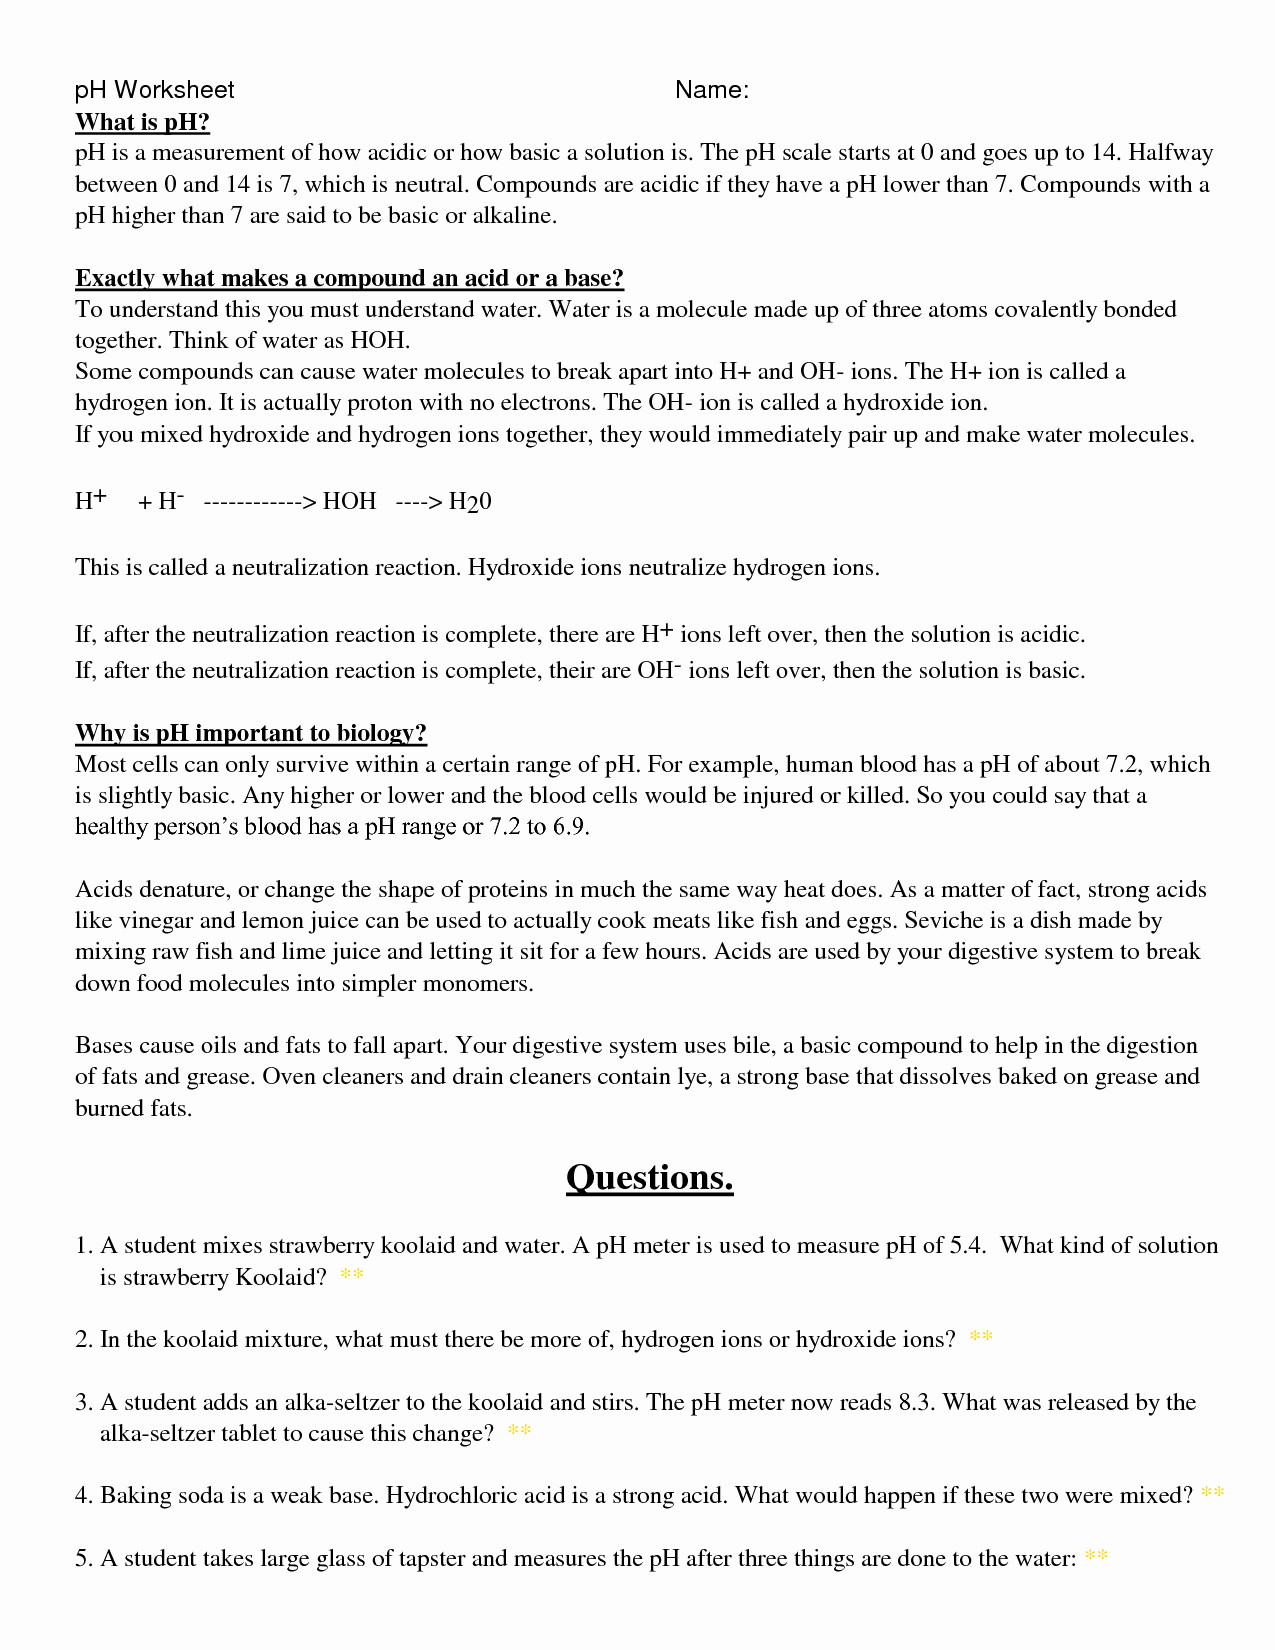 Ph Worksheet Answer Key Unique Ph Scale Worksheet